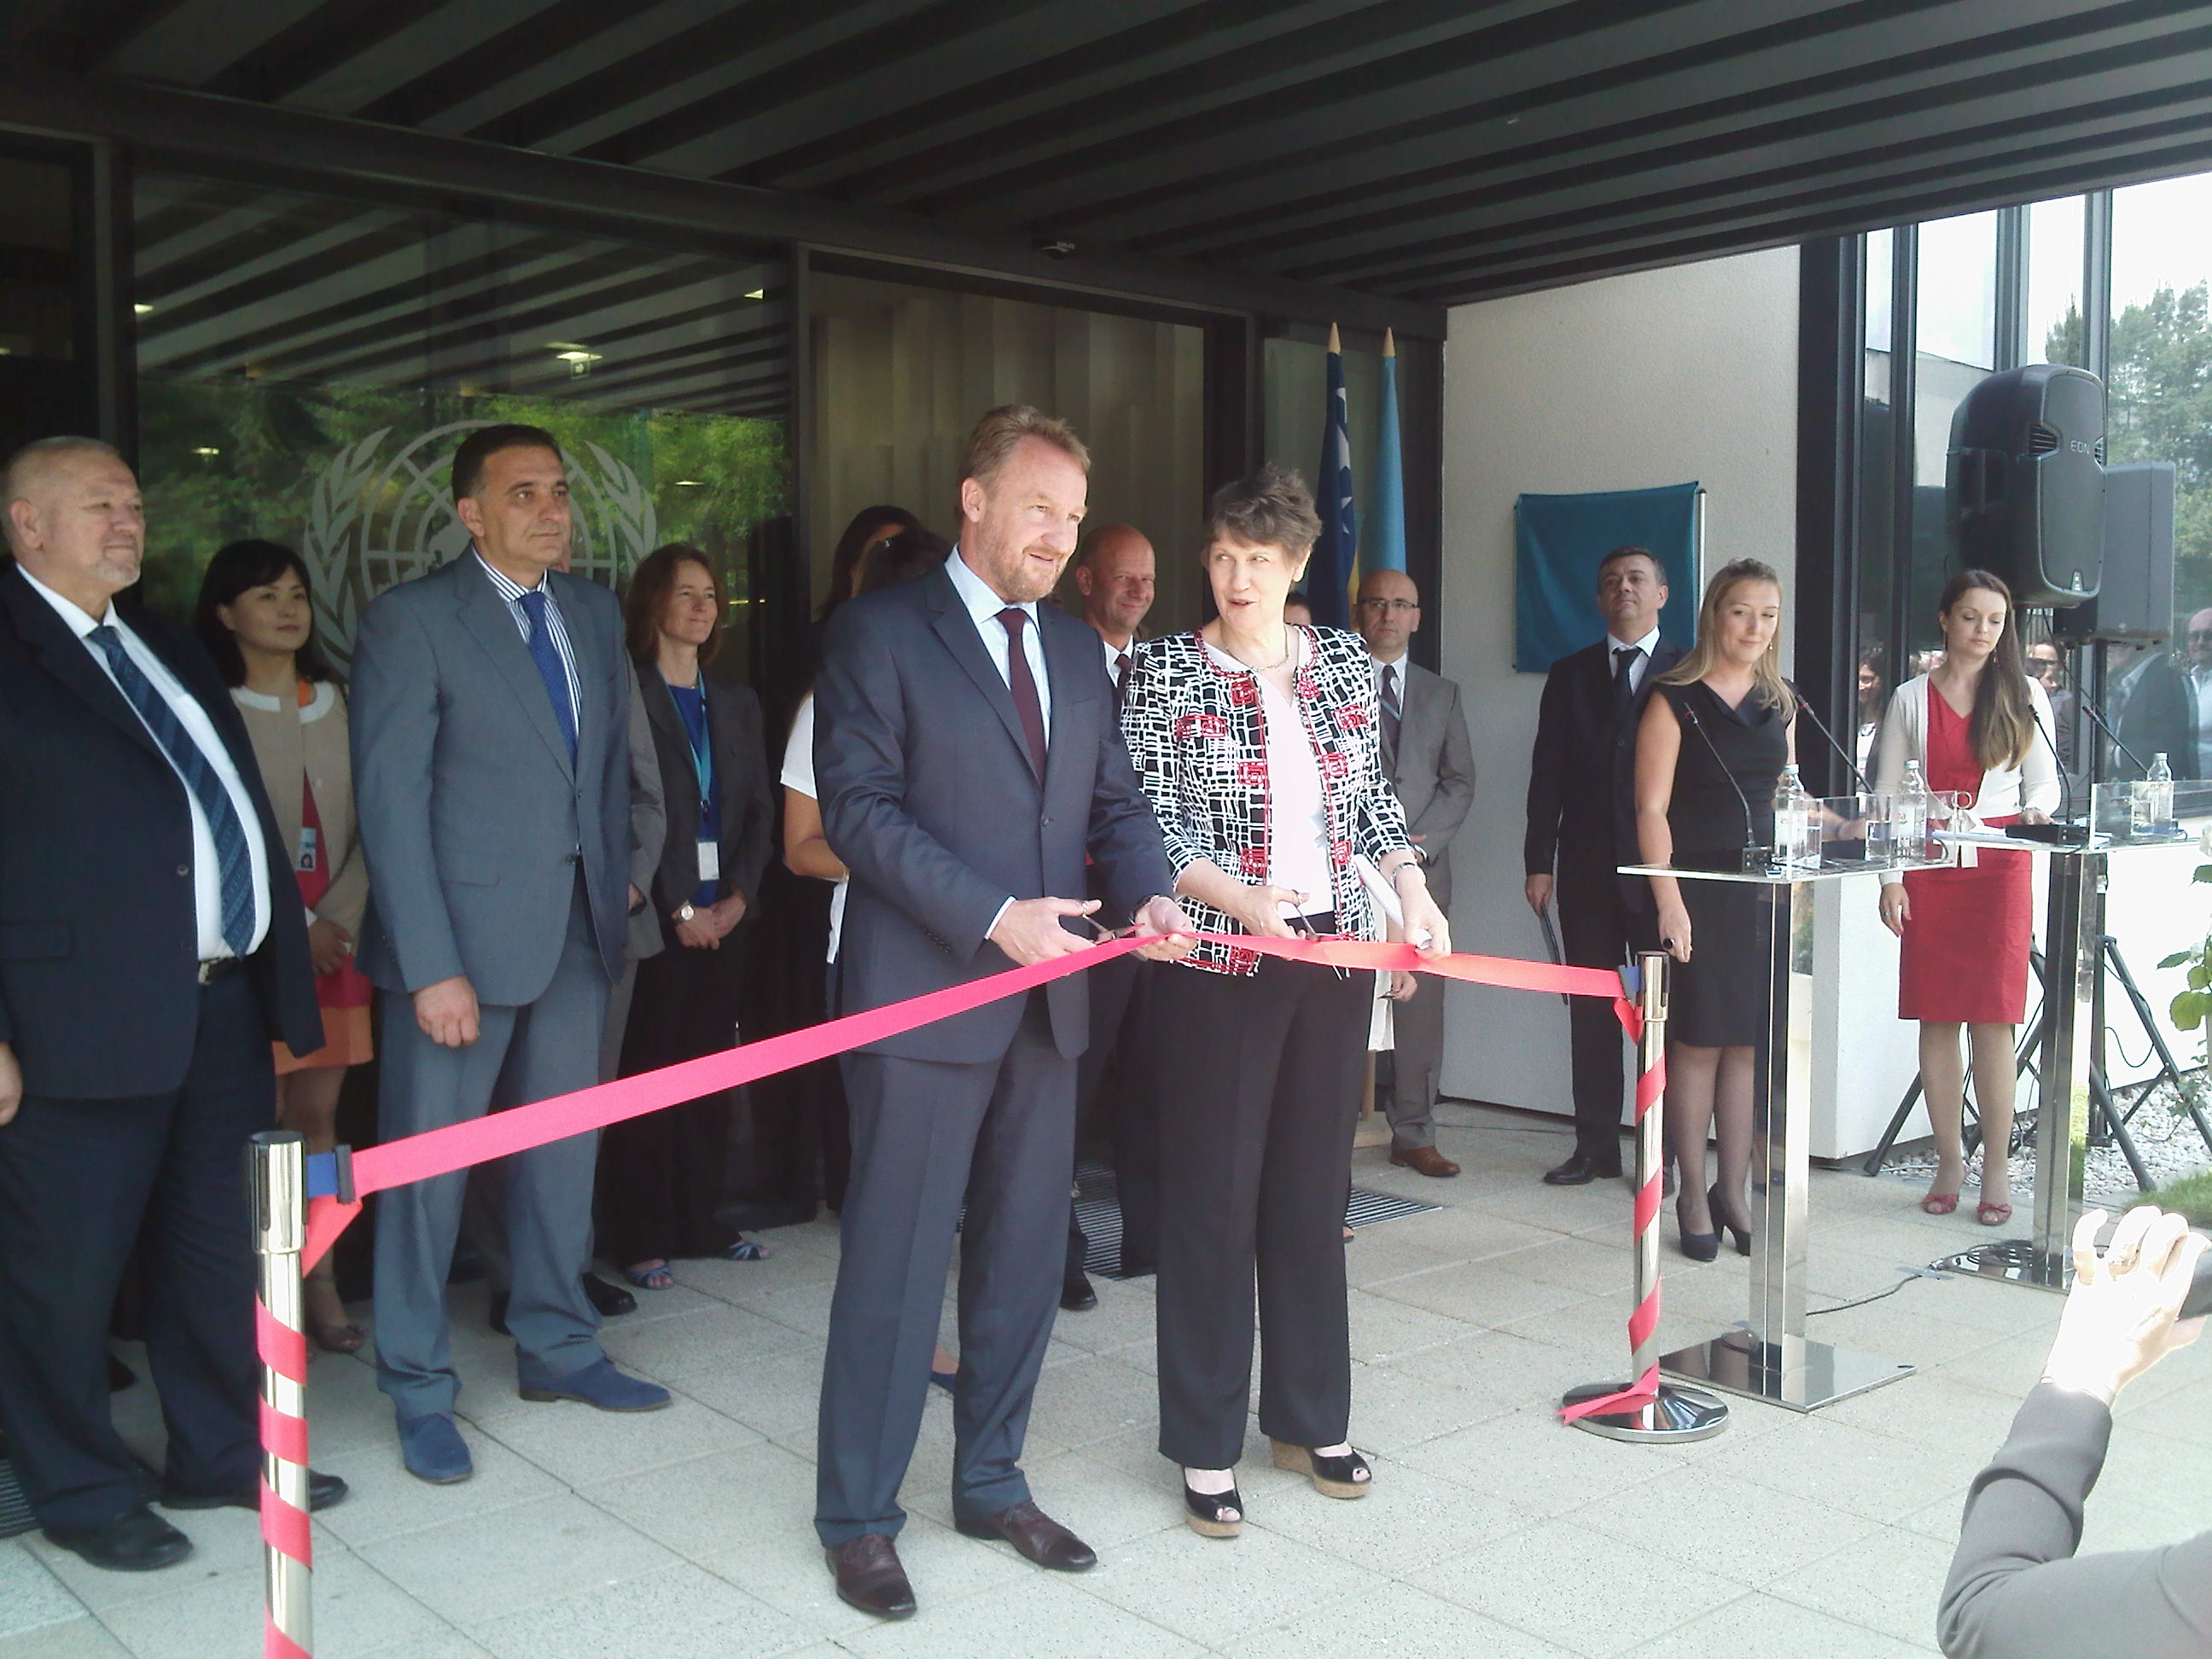 Opening Ceremony for New UN Building in Sarajevo